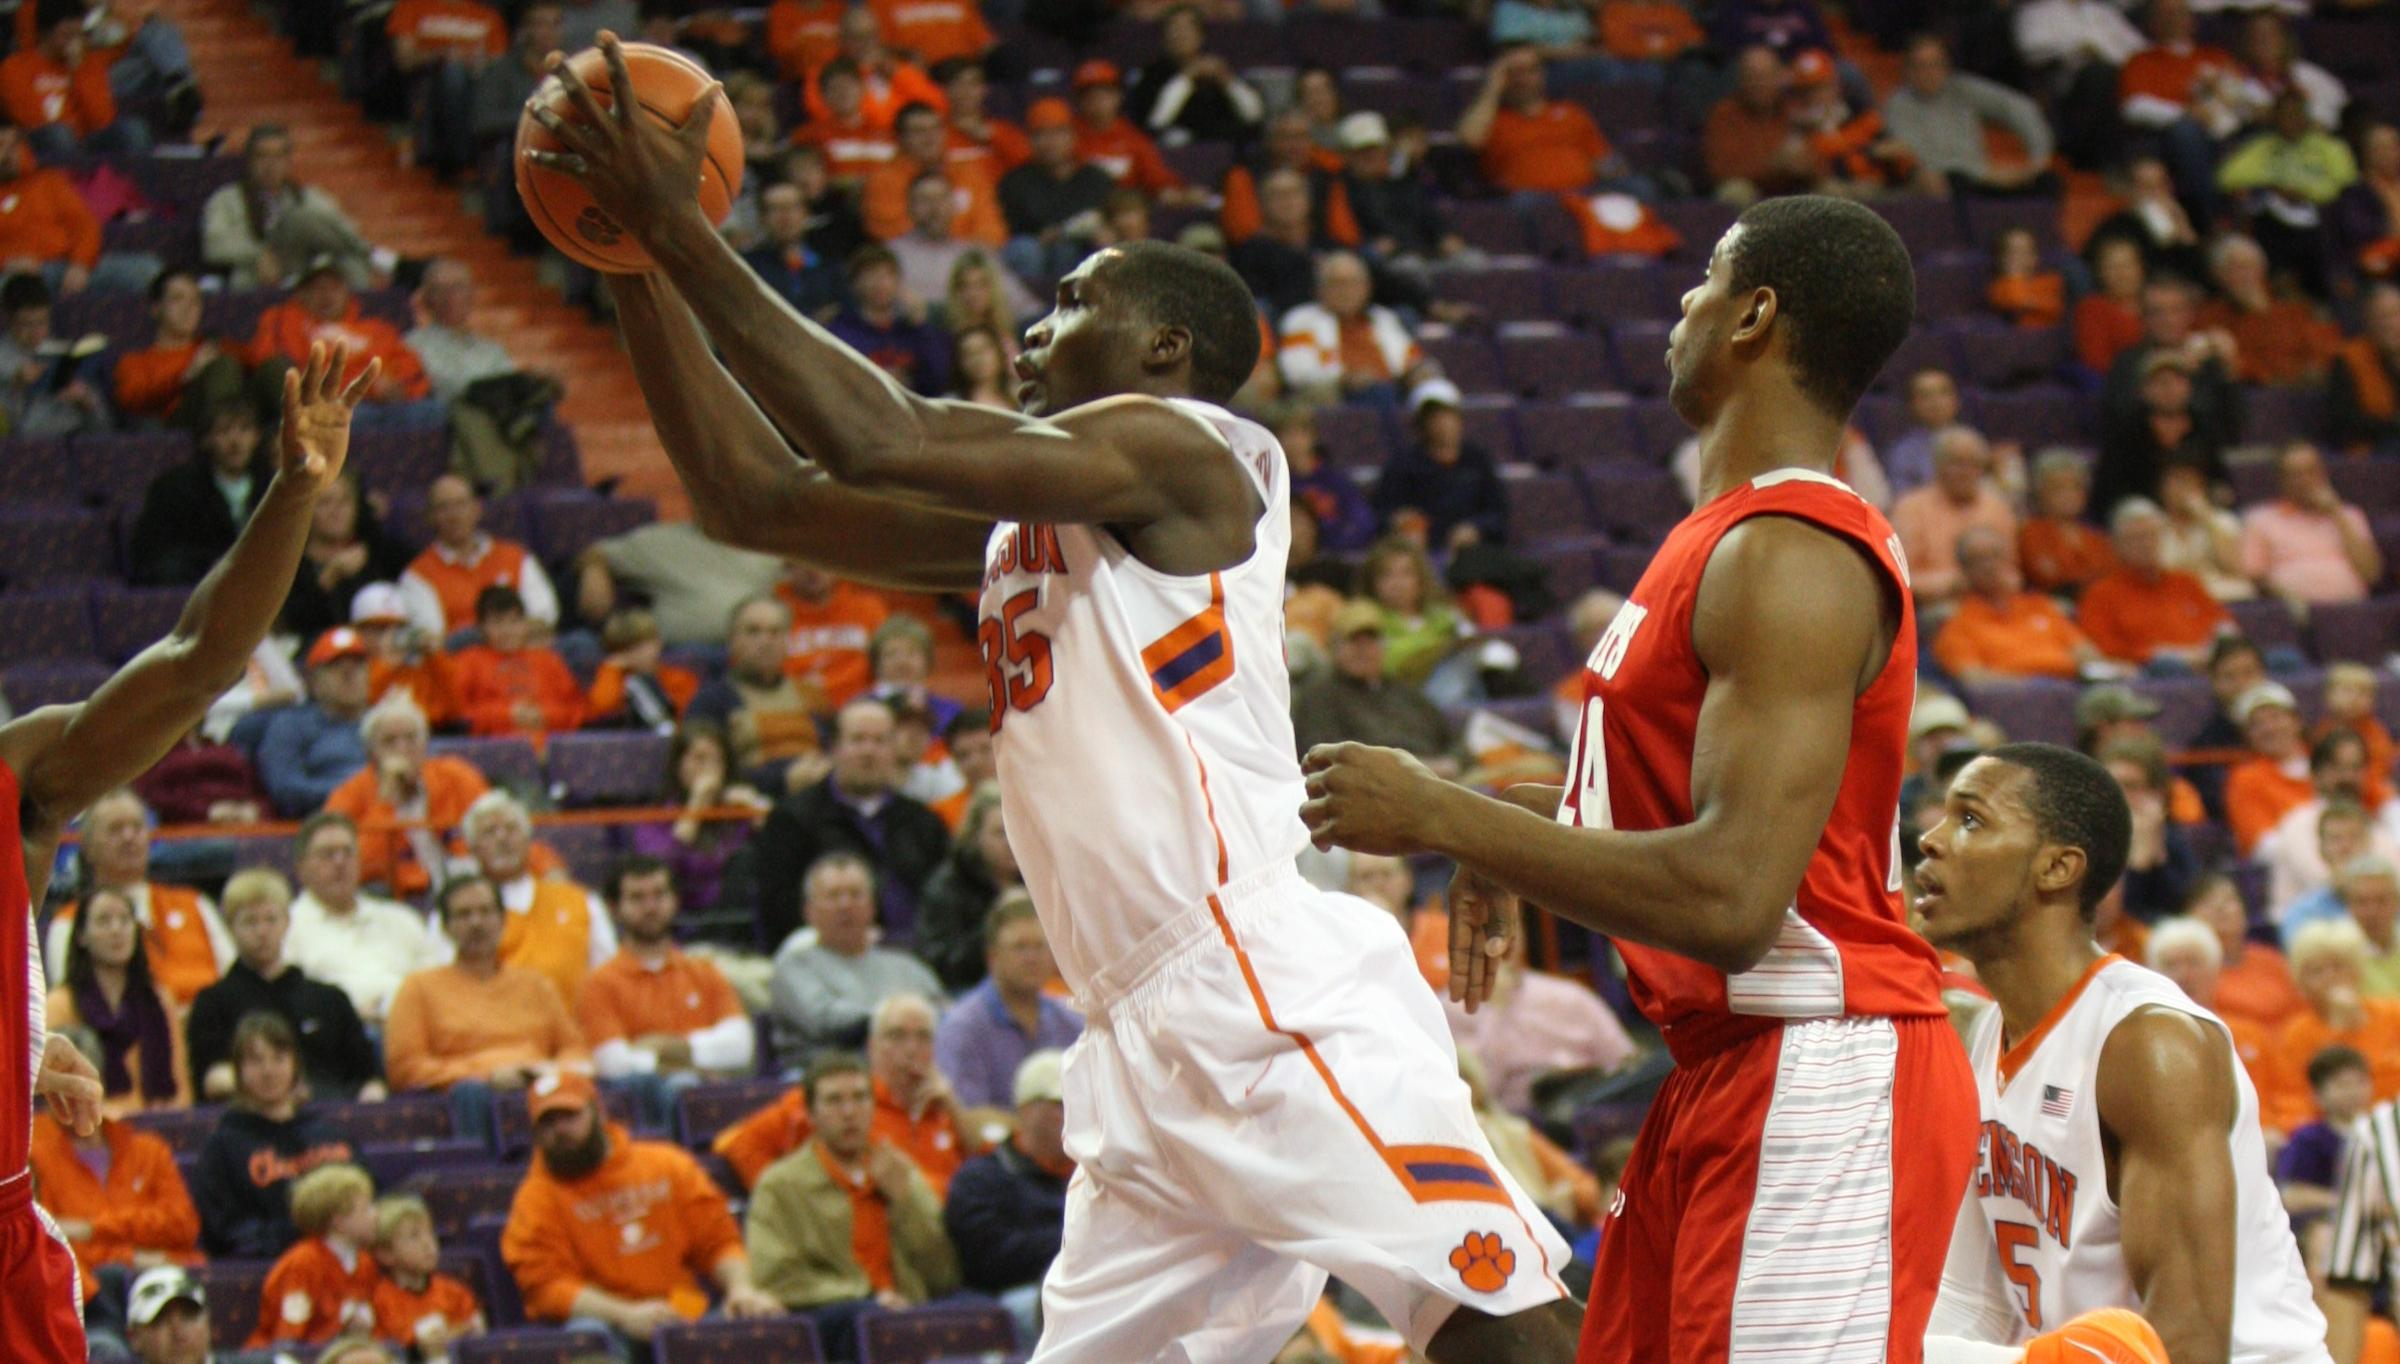 Tigers to Host Florida State Thursday in ACC Home Opener